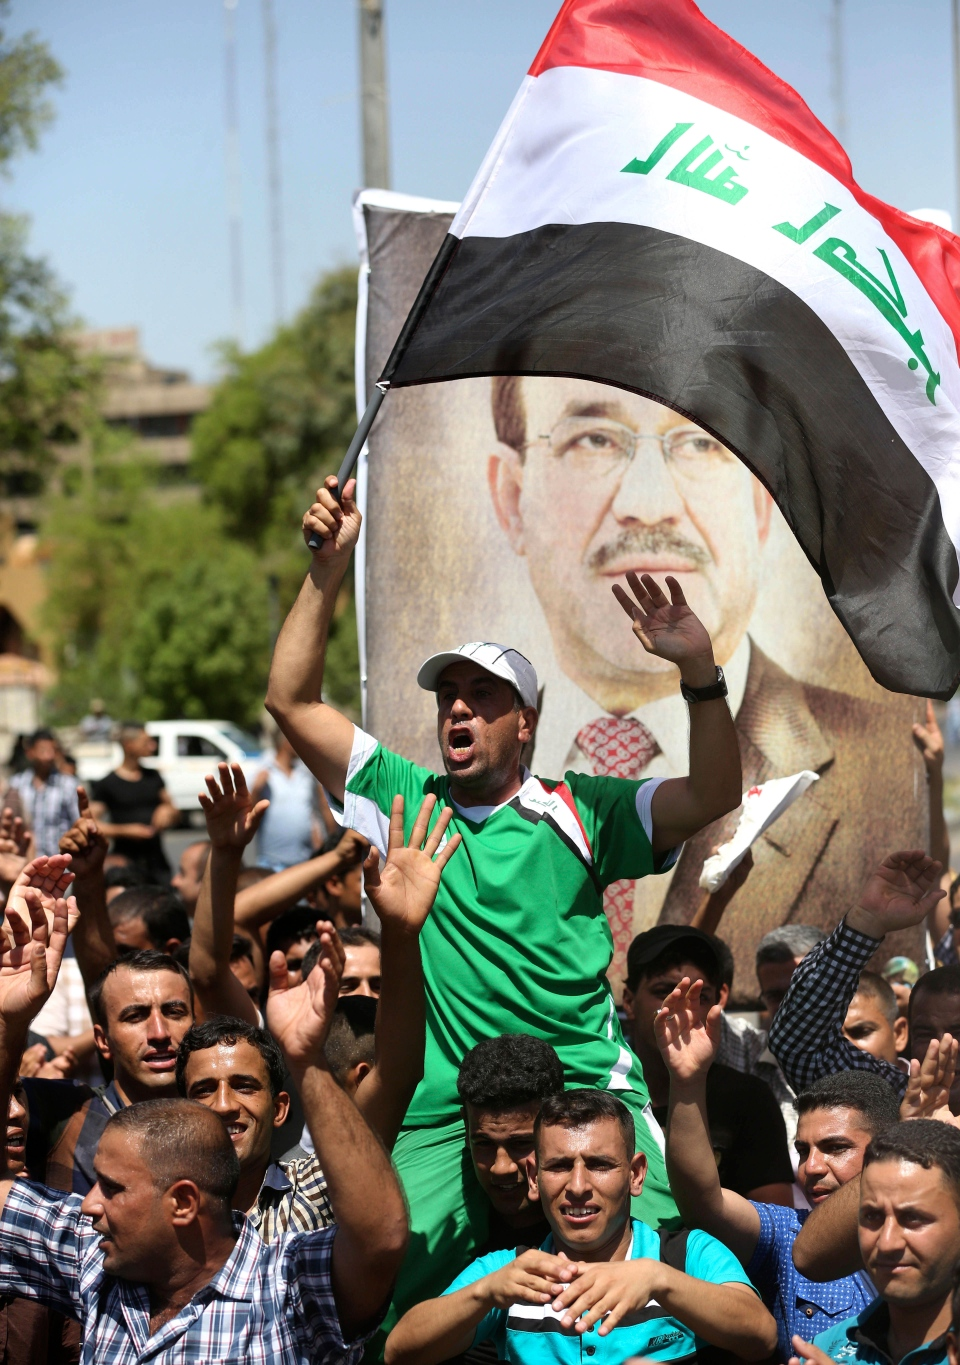 Iraqis chant pro-government slogans and wave national flags to show support for embattled Prime Minister Nouri al-Maliki during a demonstration in Baghdad, Iraq, Monday, Aug. 11, 2014. (AP / Hadi Mizban)